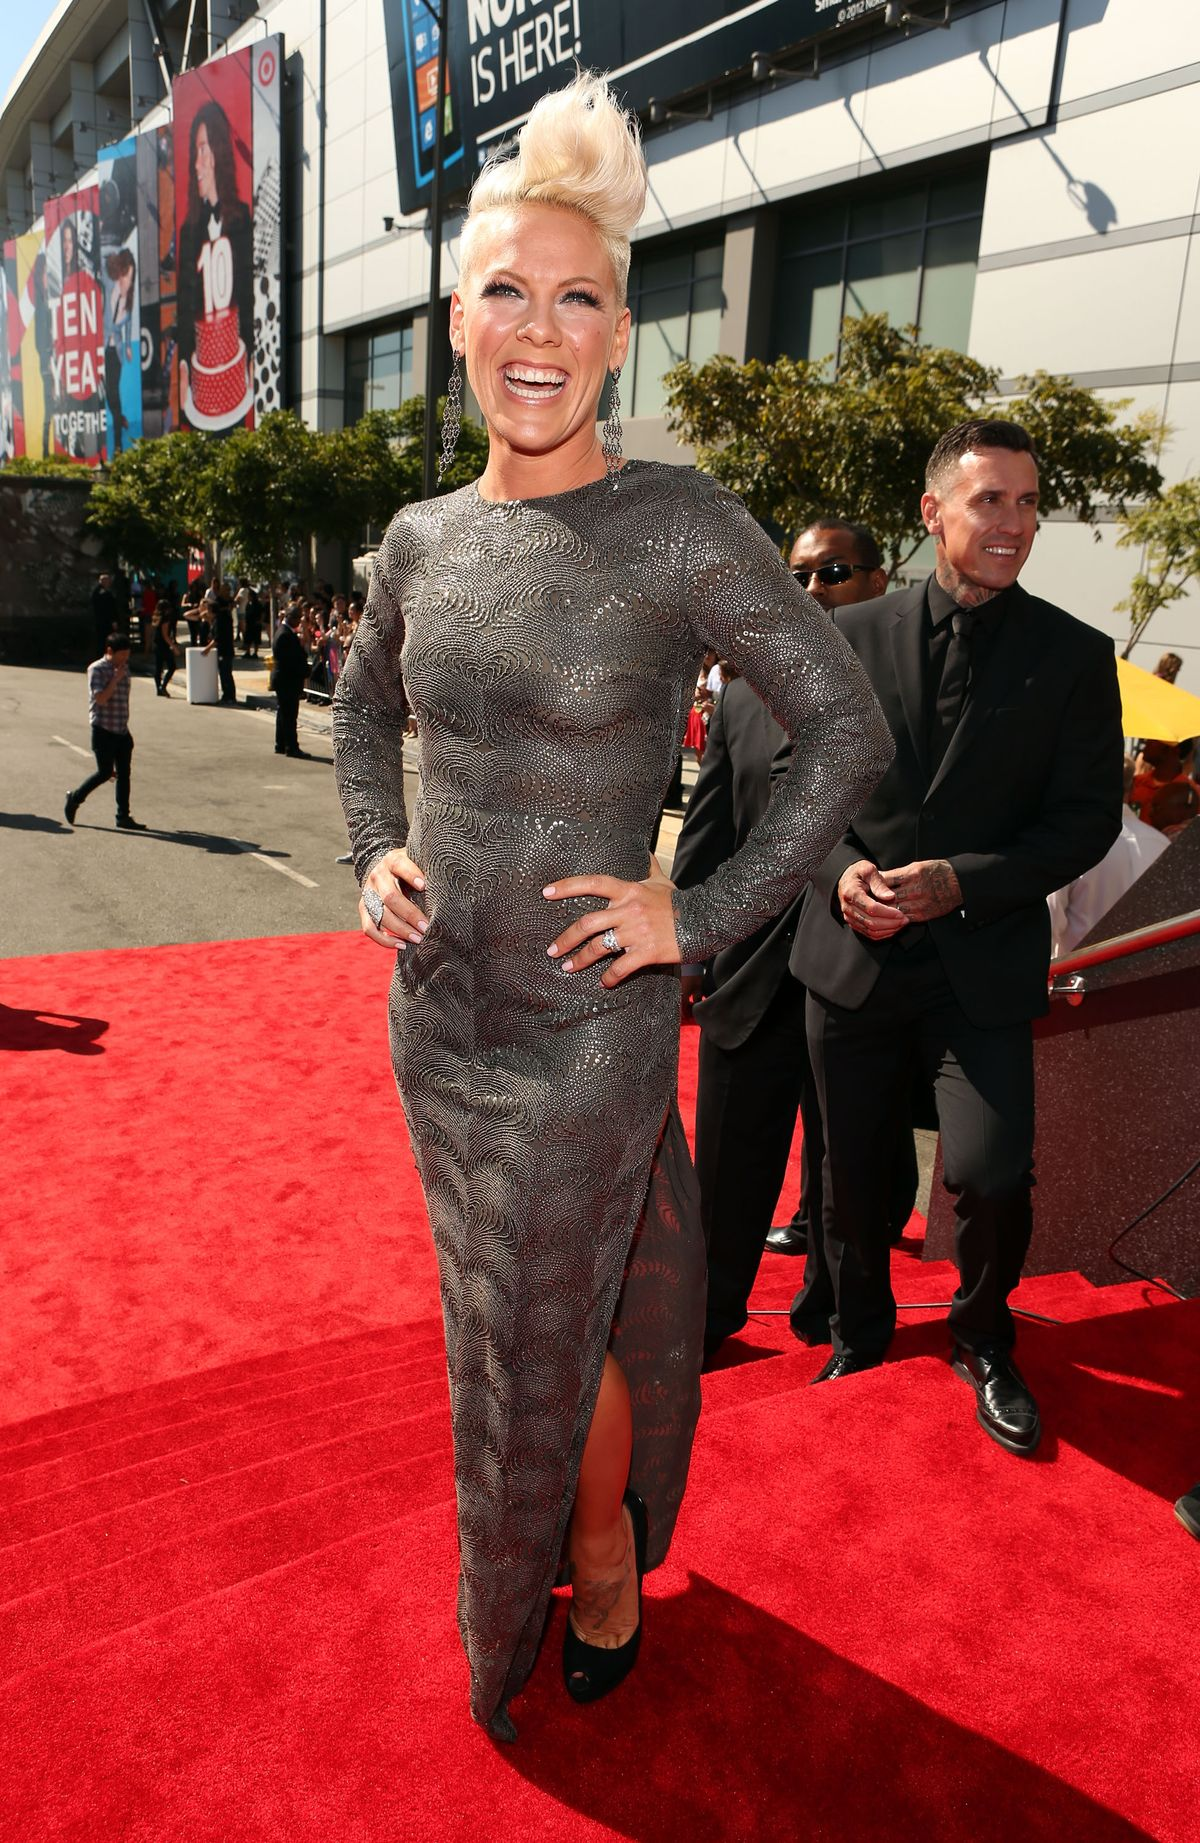 LOS ANGELES, CA - SEPTEMBER 06:  Singer Pink arrives at the 2012 MTV Video Music Awards at Staples Center on September 6, 2012 in Los Angeles, California.  (Photo by Christopher Polk/Getty Images)